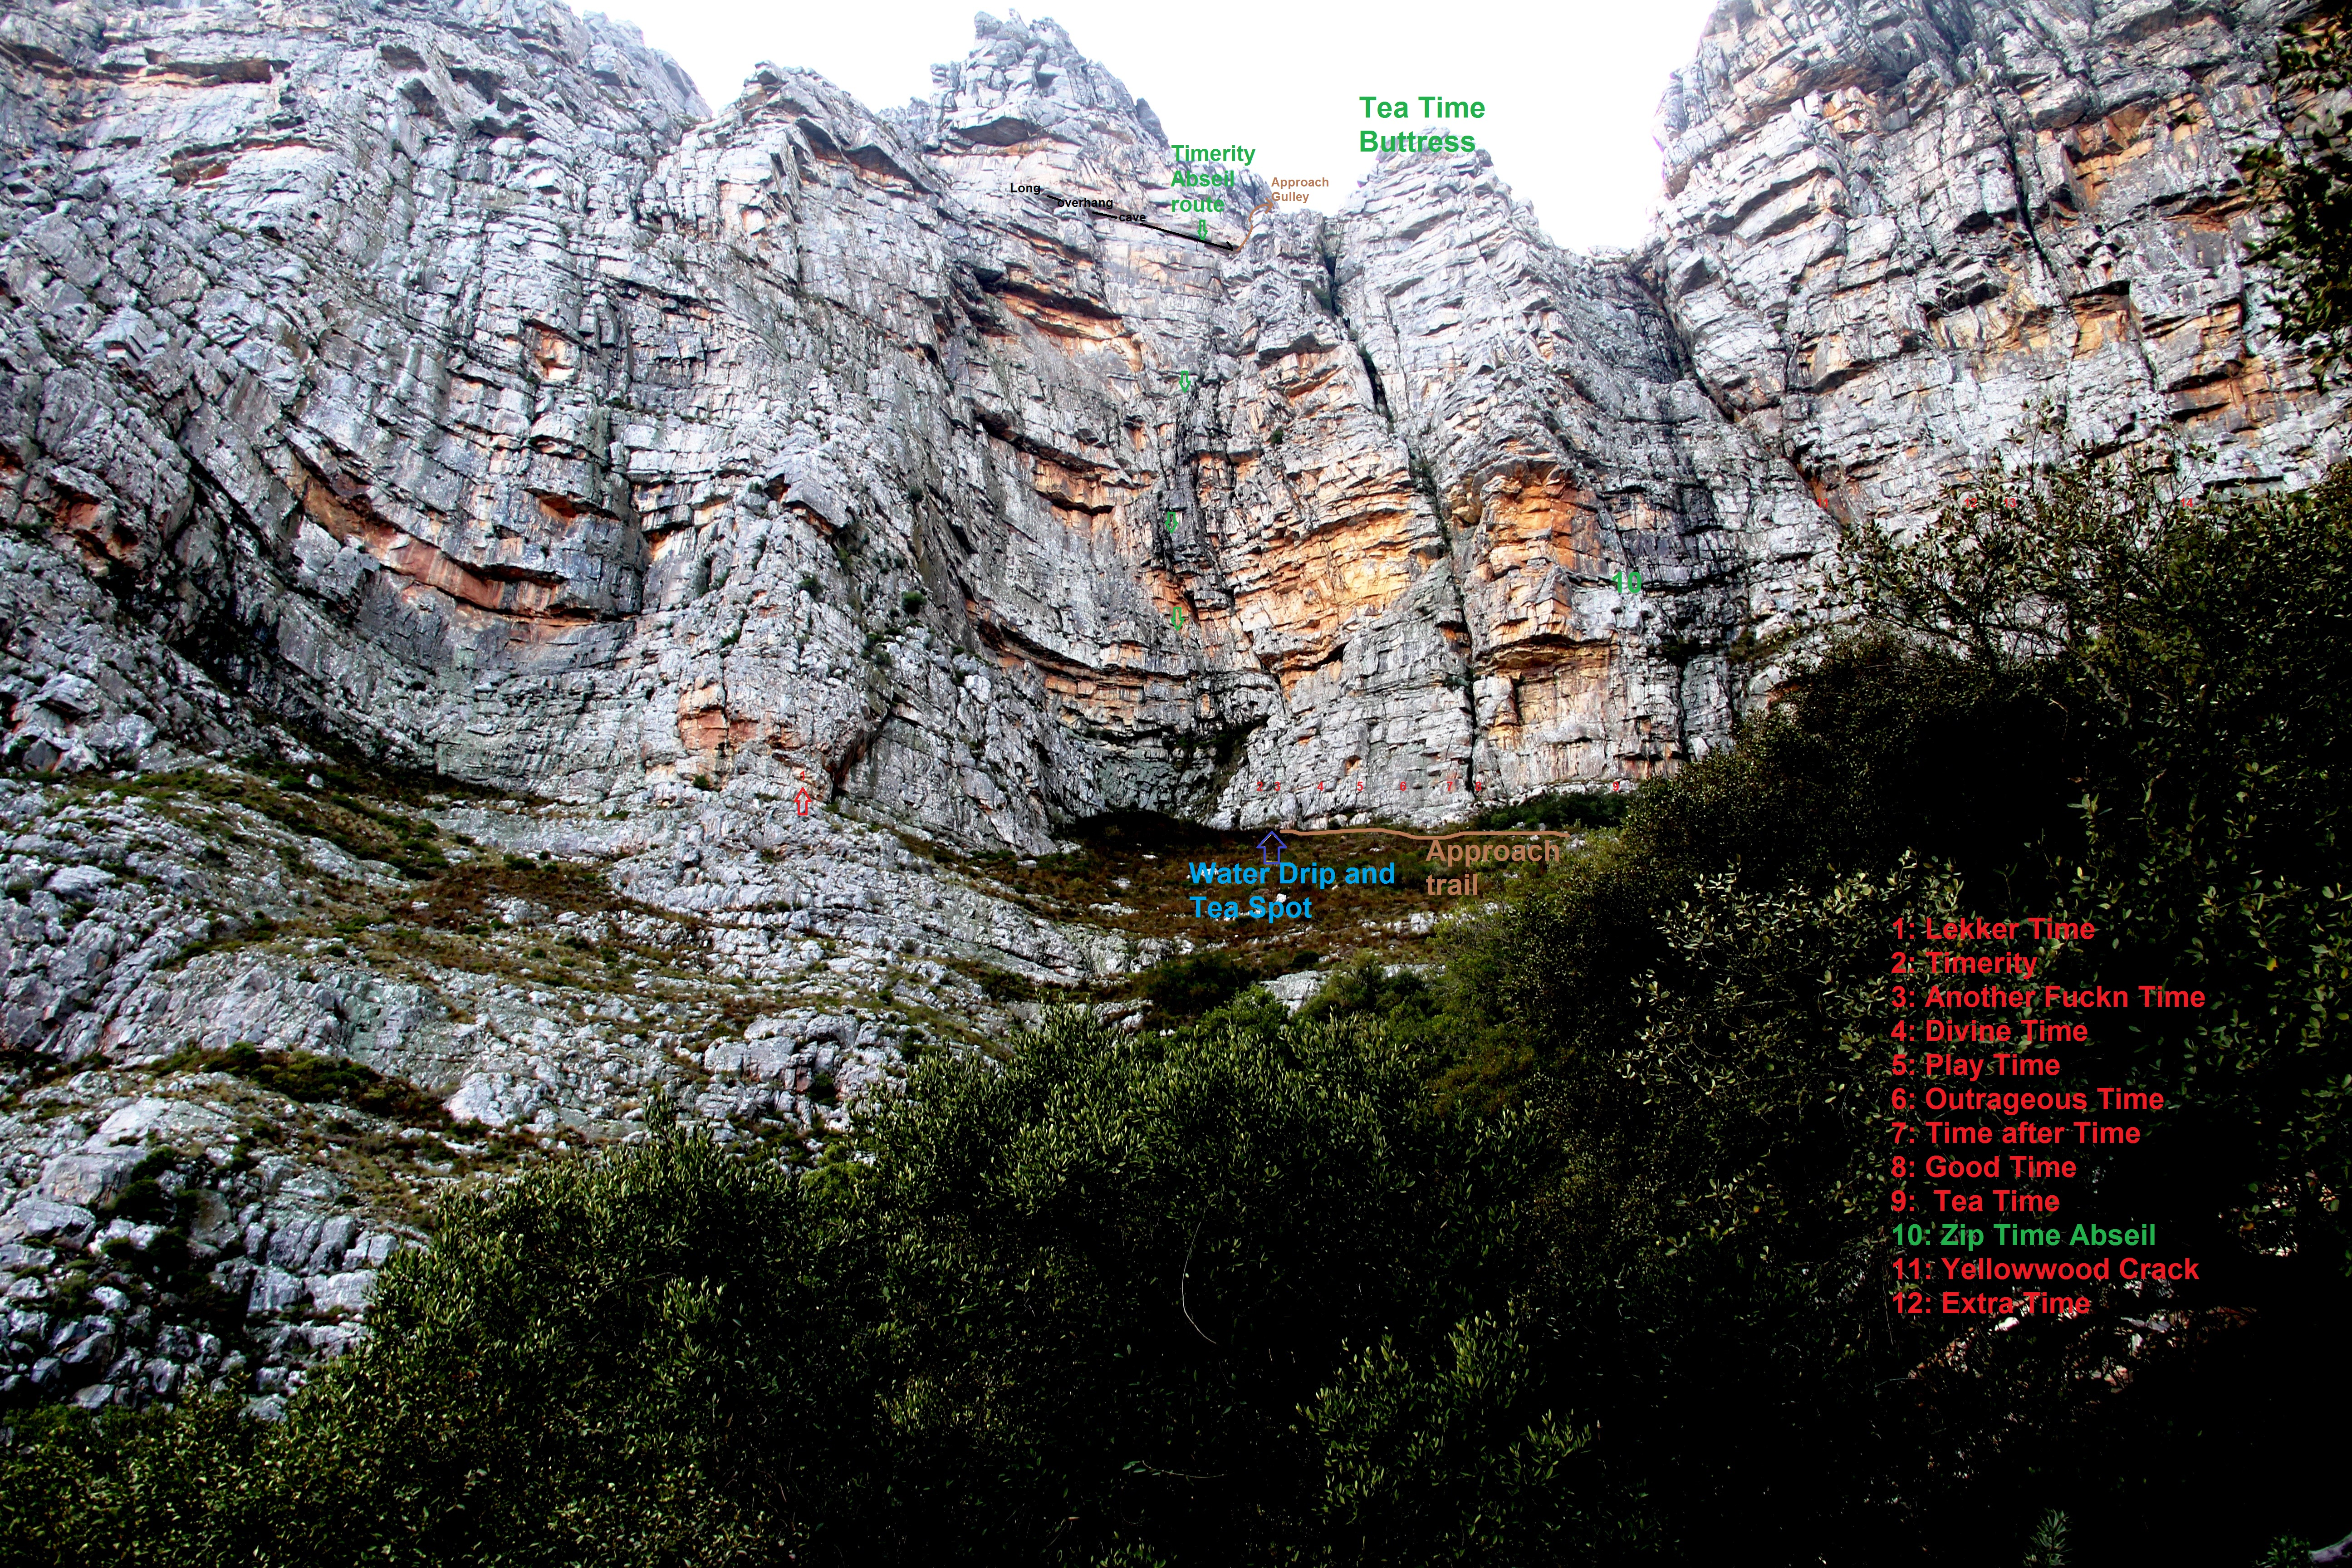 Timerity Abseil Route and the start of the other routes marked.jpg